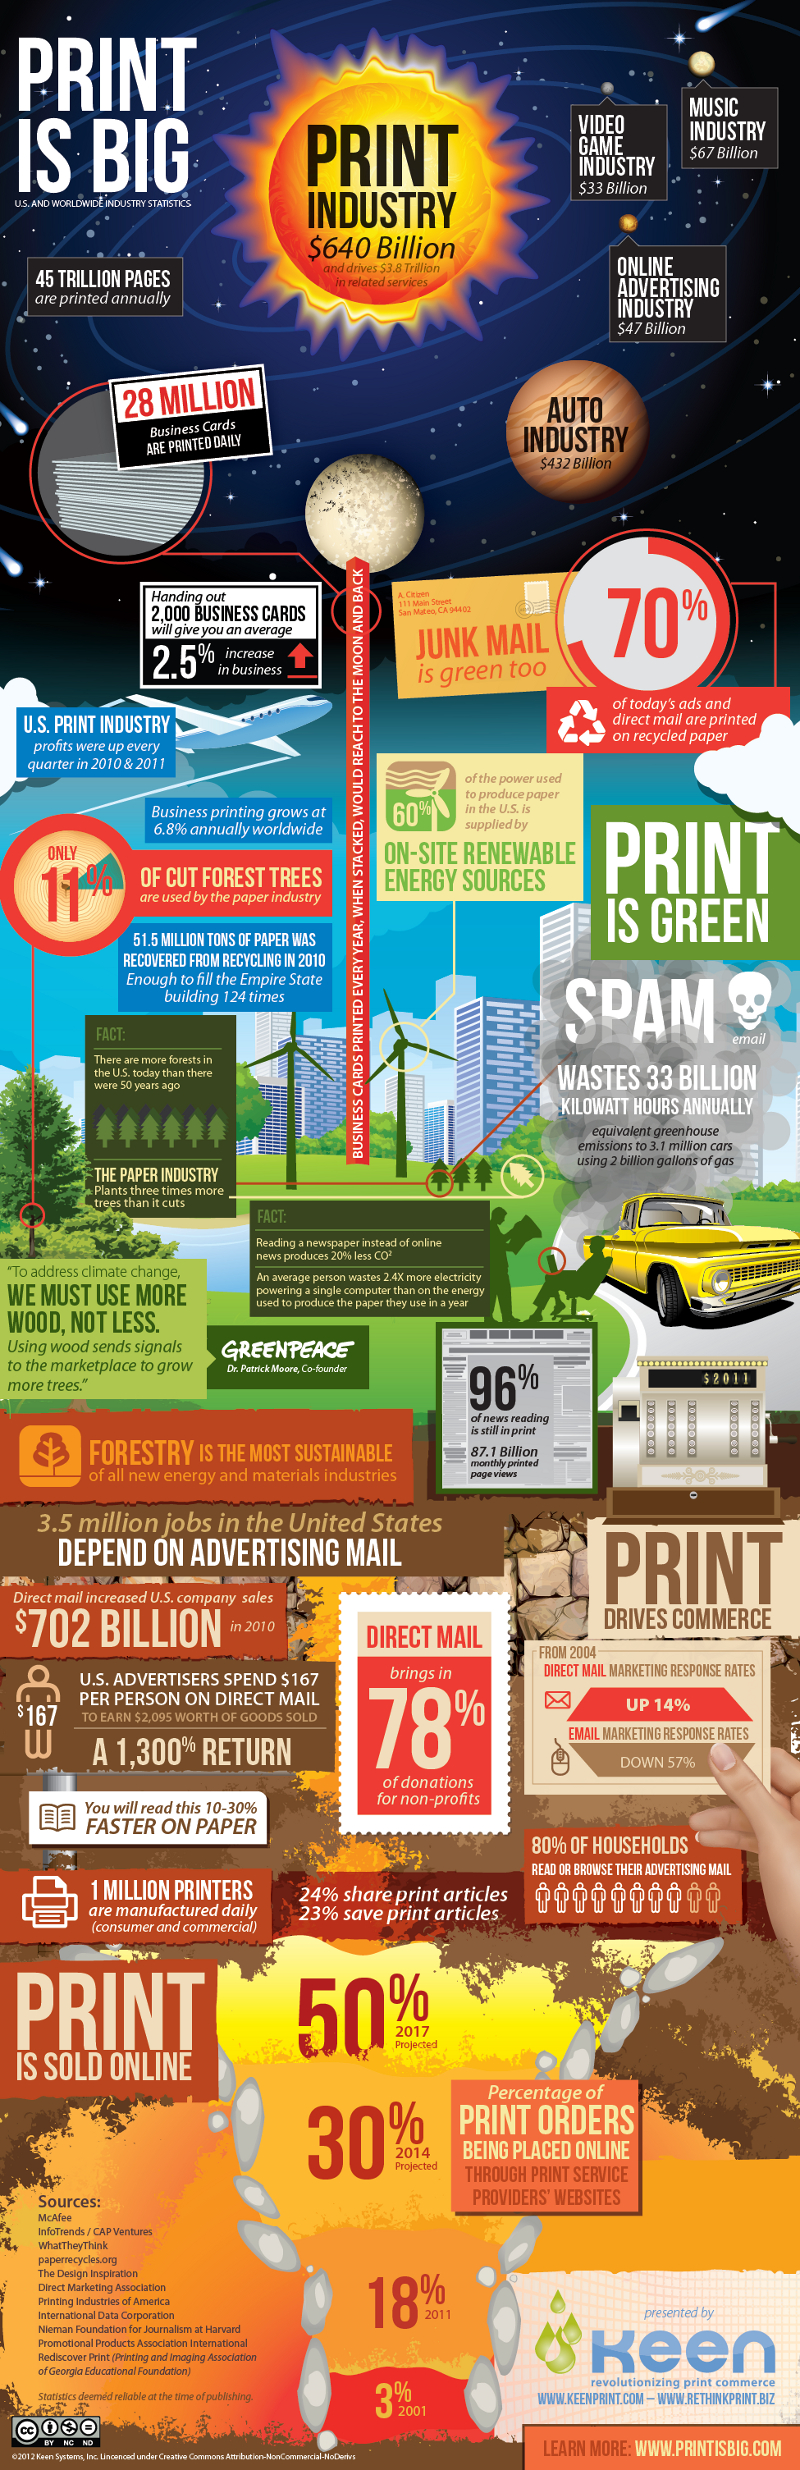 Printing Industry Statistics and Trends